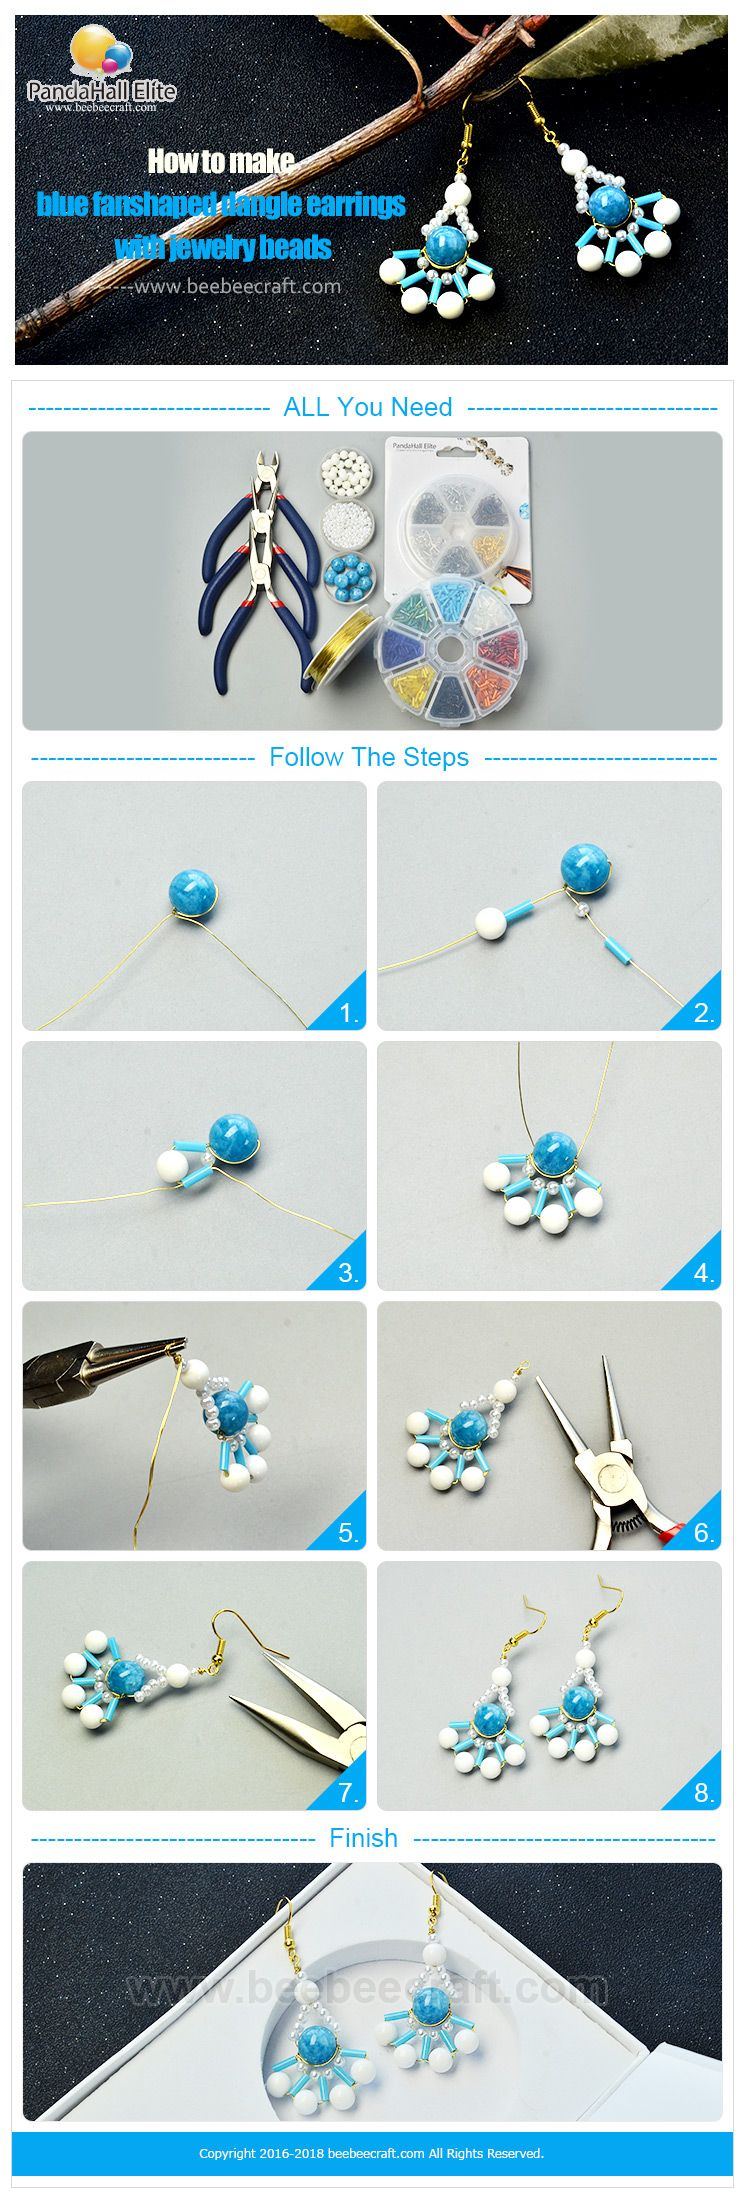 necklace pin how bracelet on buy flower for and charming instructions jewelry glass make to beaded beads online beebeecraft